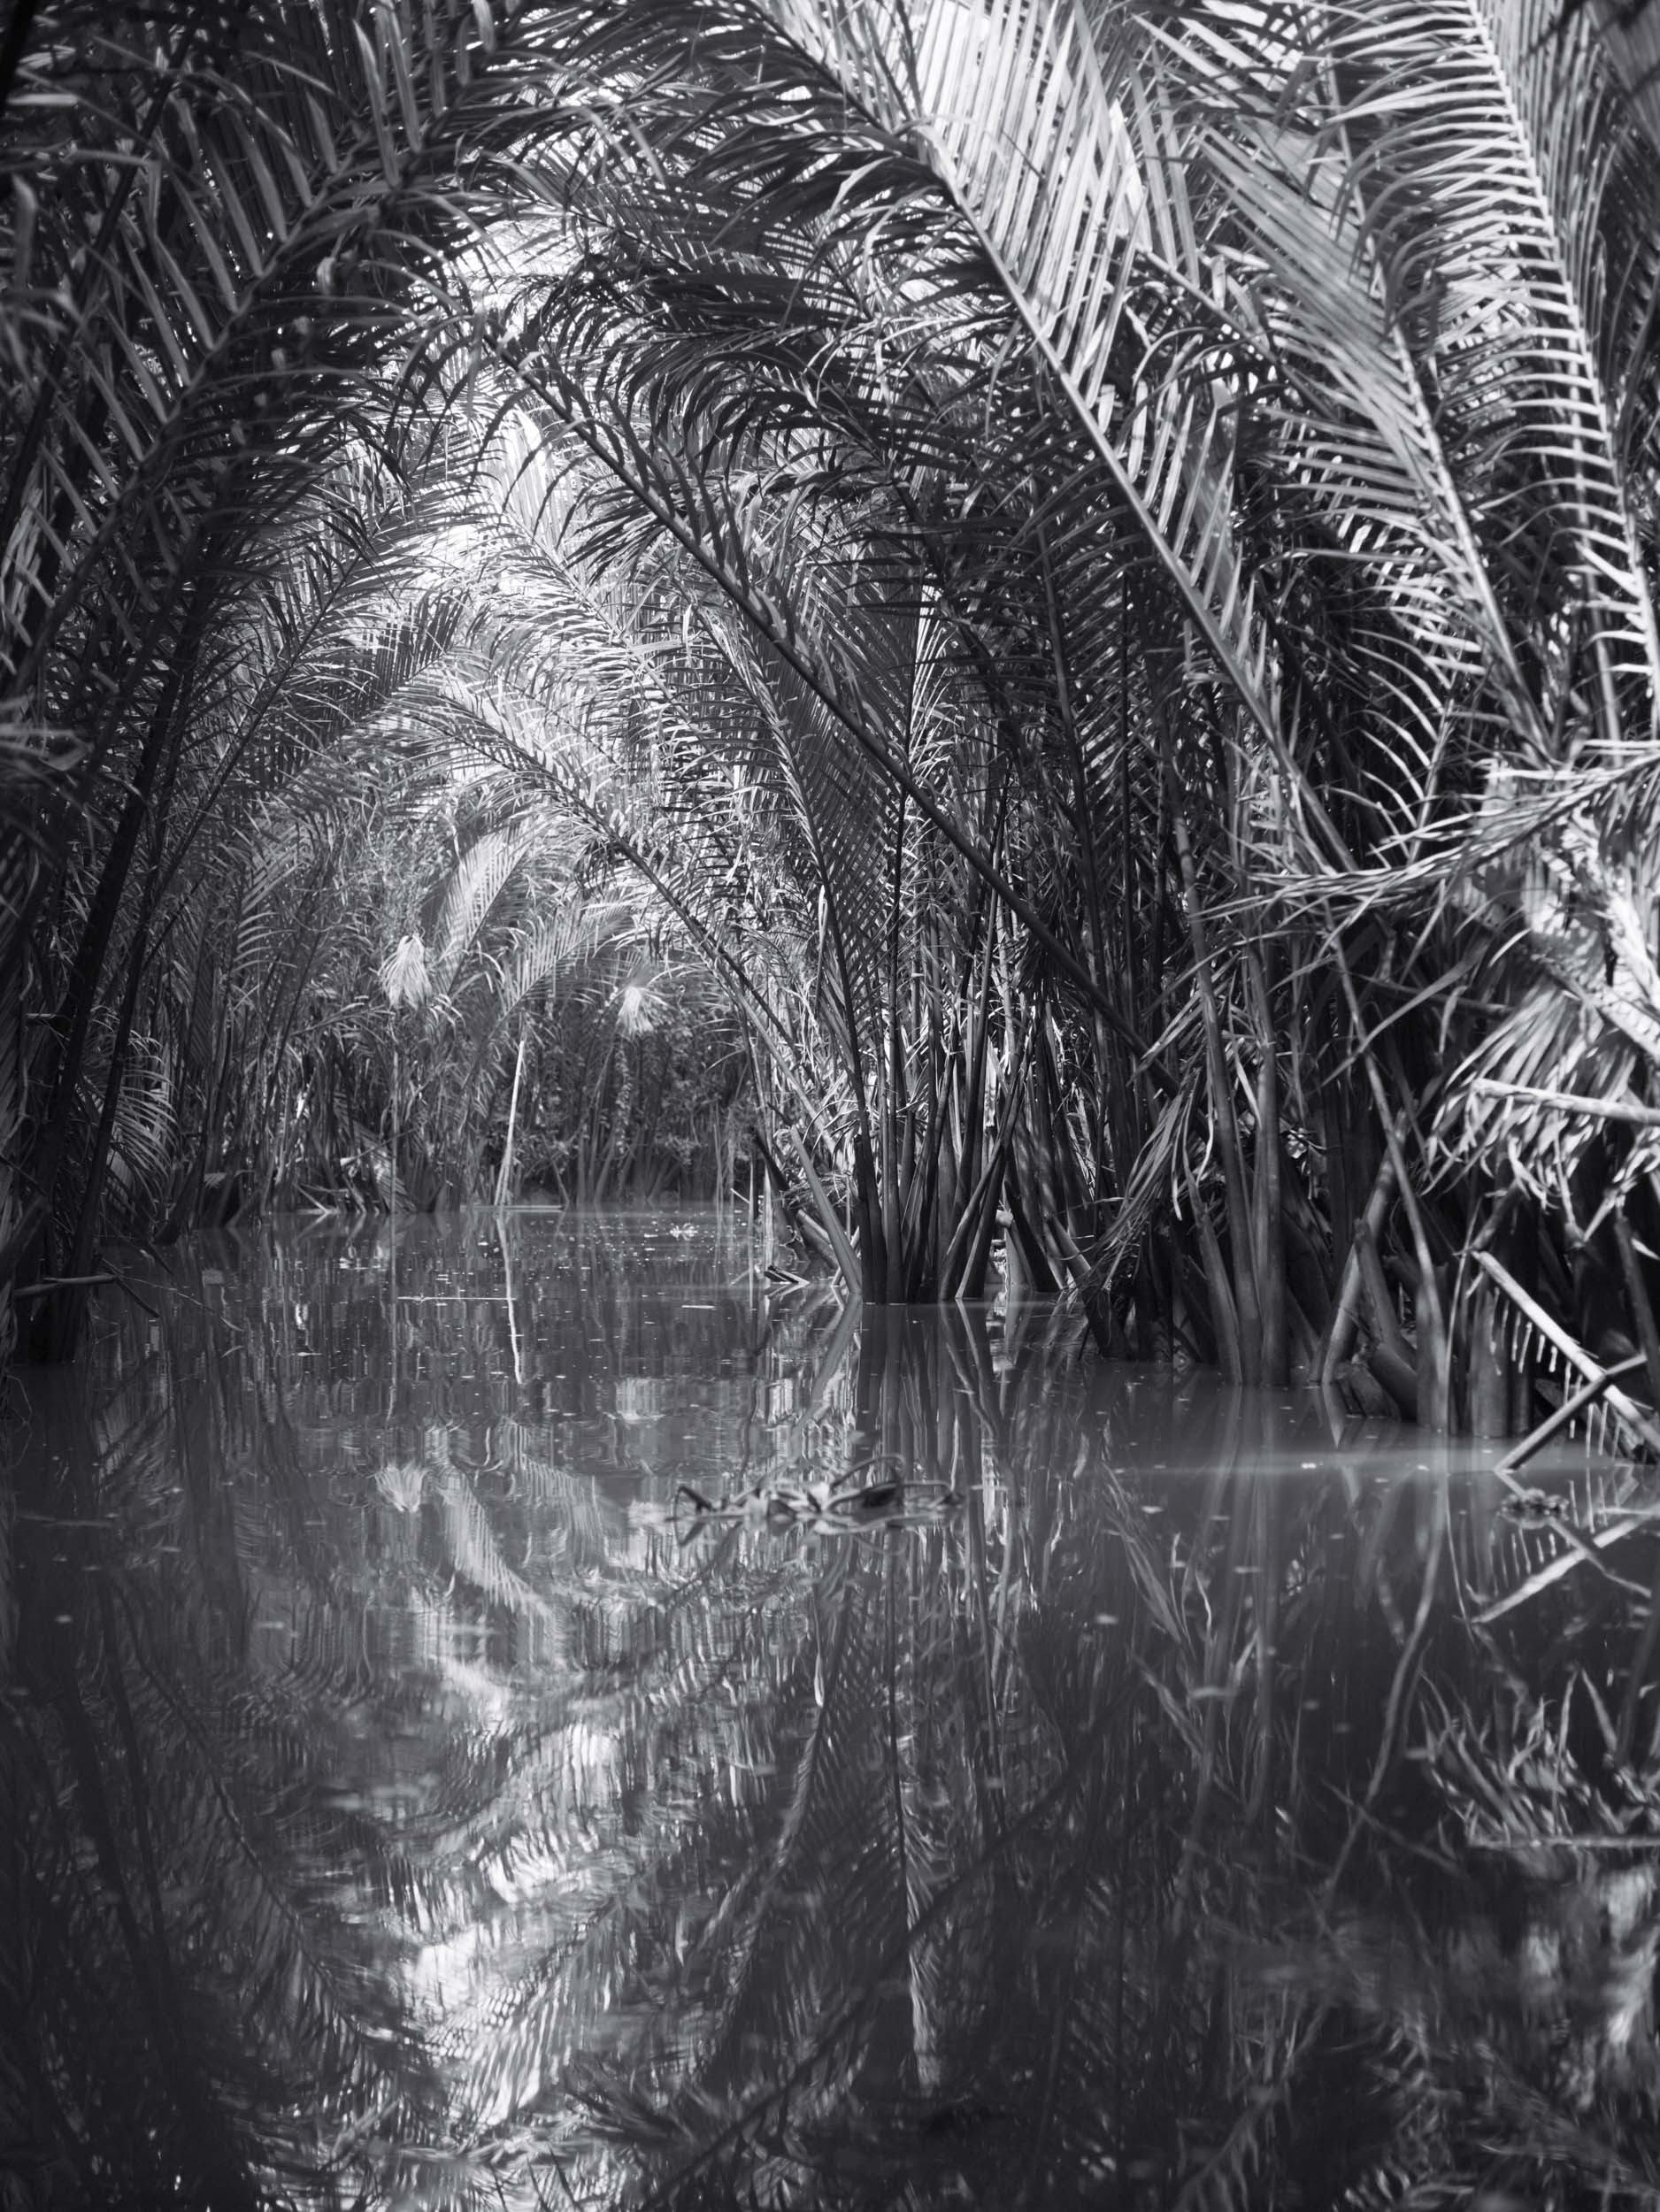 15_Asia_Mekong_Delta_Water_Cocos_182